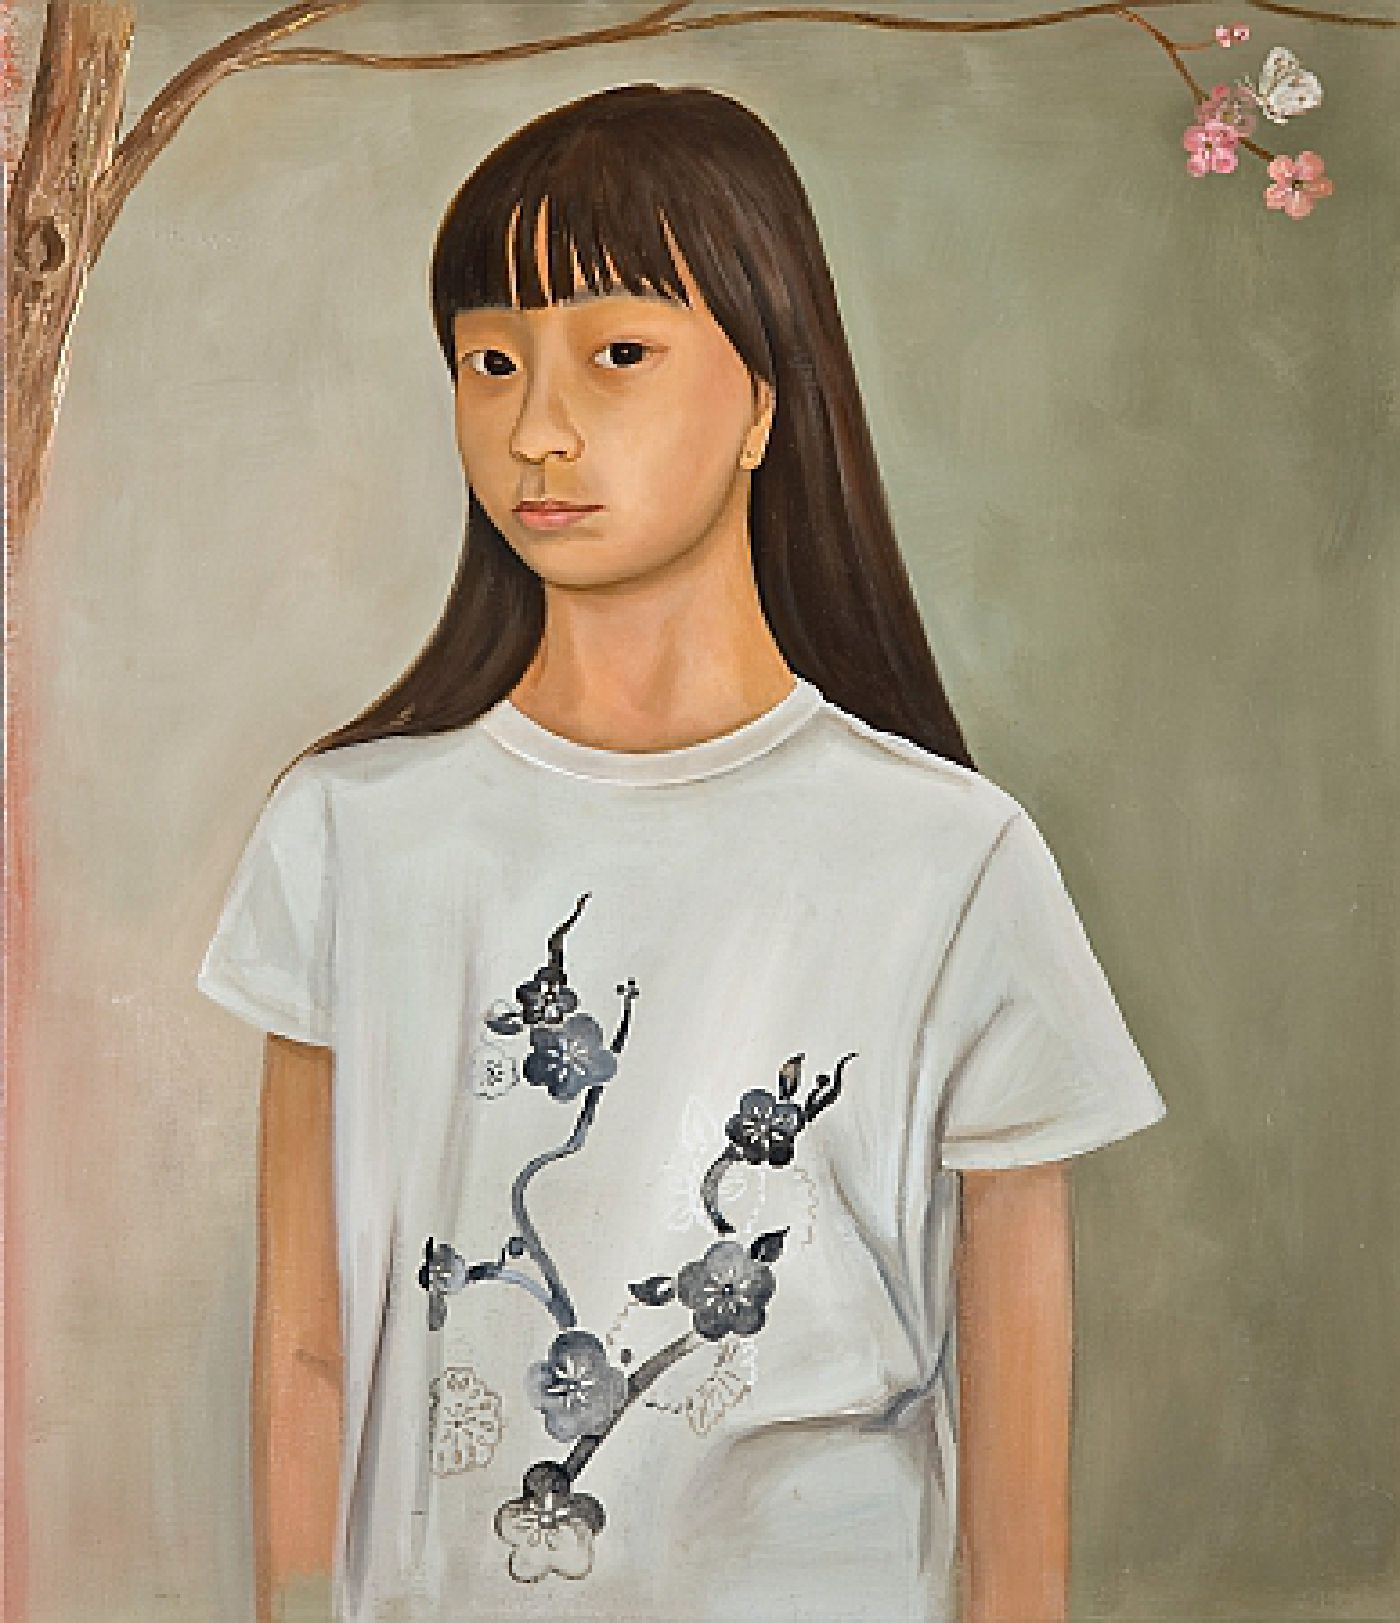 Girl with Cherry Blossom Tee Shirt - oil on linen, 26 inches x 30 inches, 2008